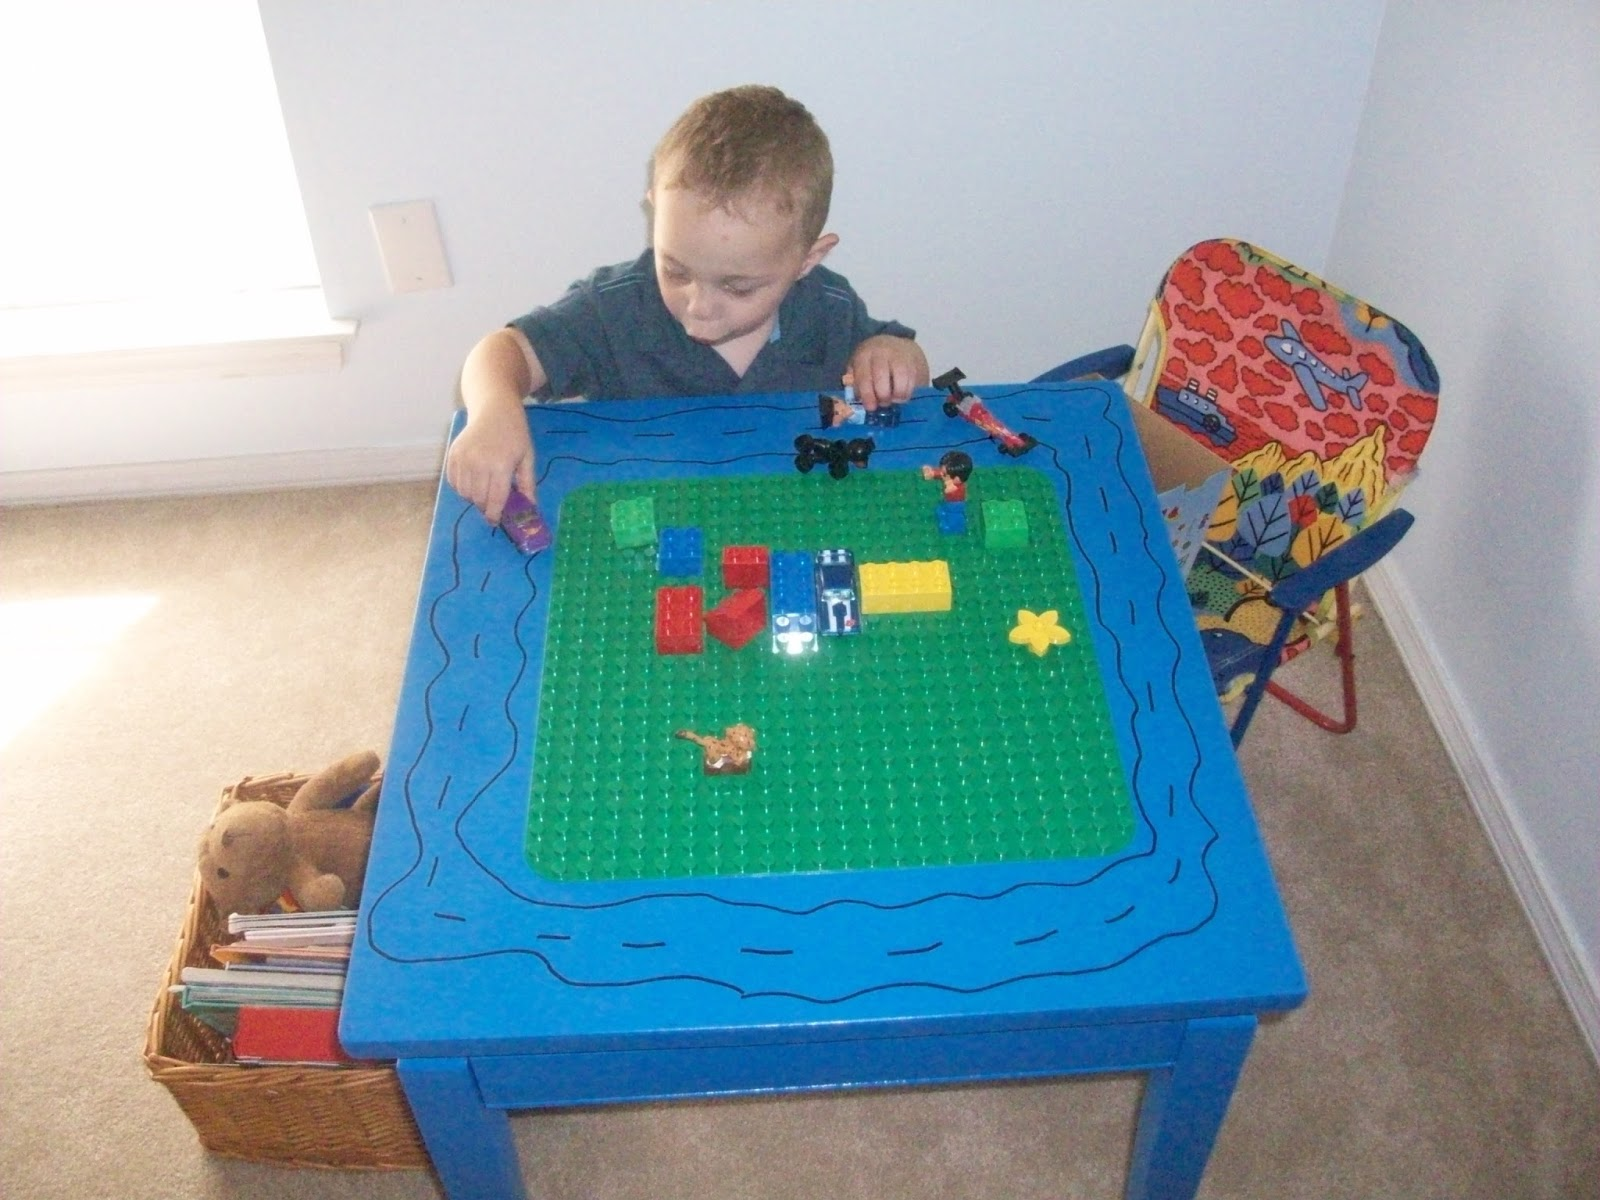 LEGO / DUPLO TABLE - This Ole Mom